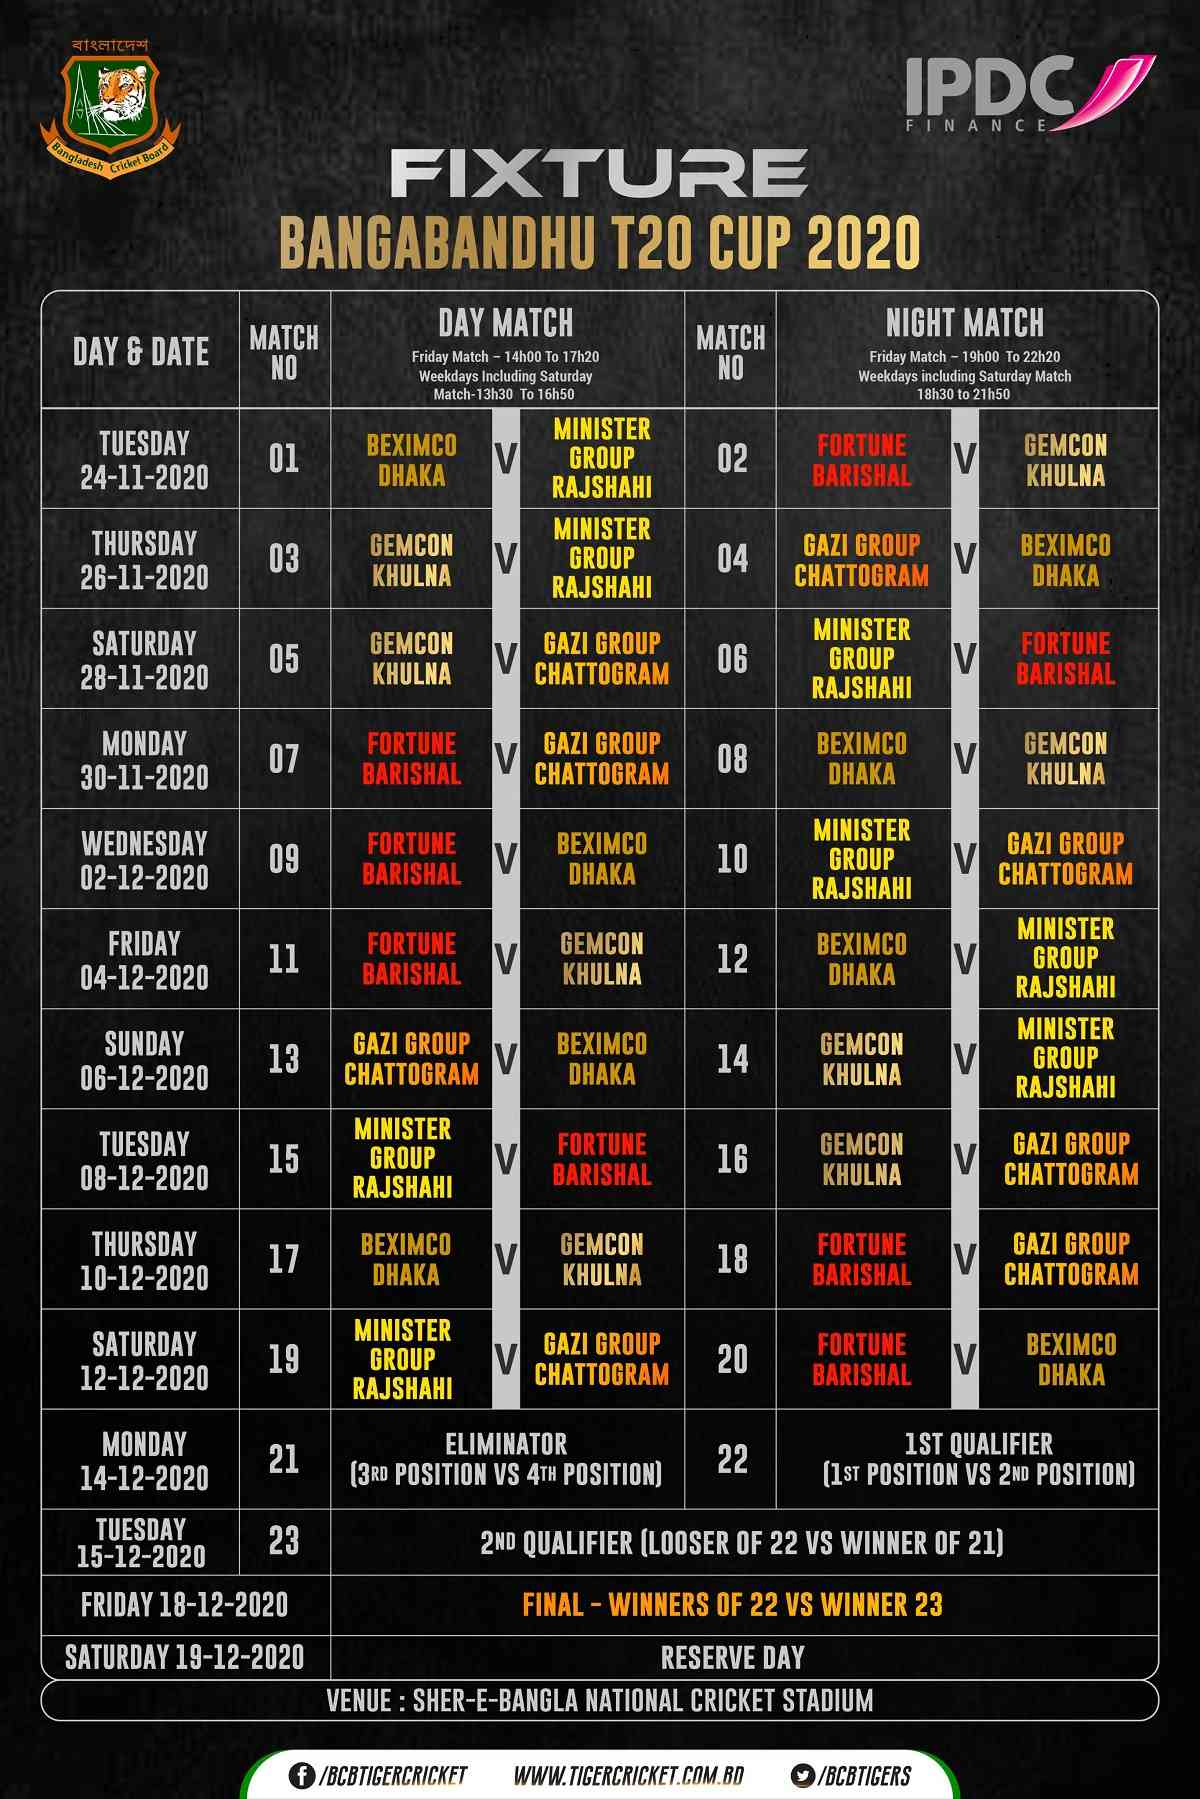 bpl 2020 schedule time table